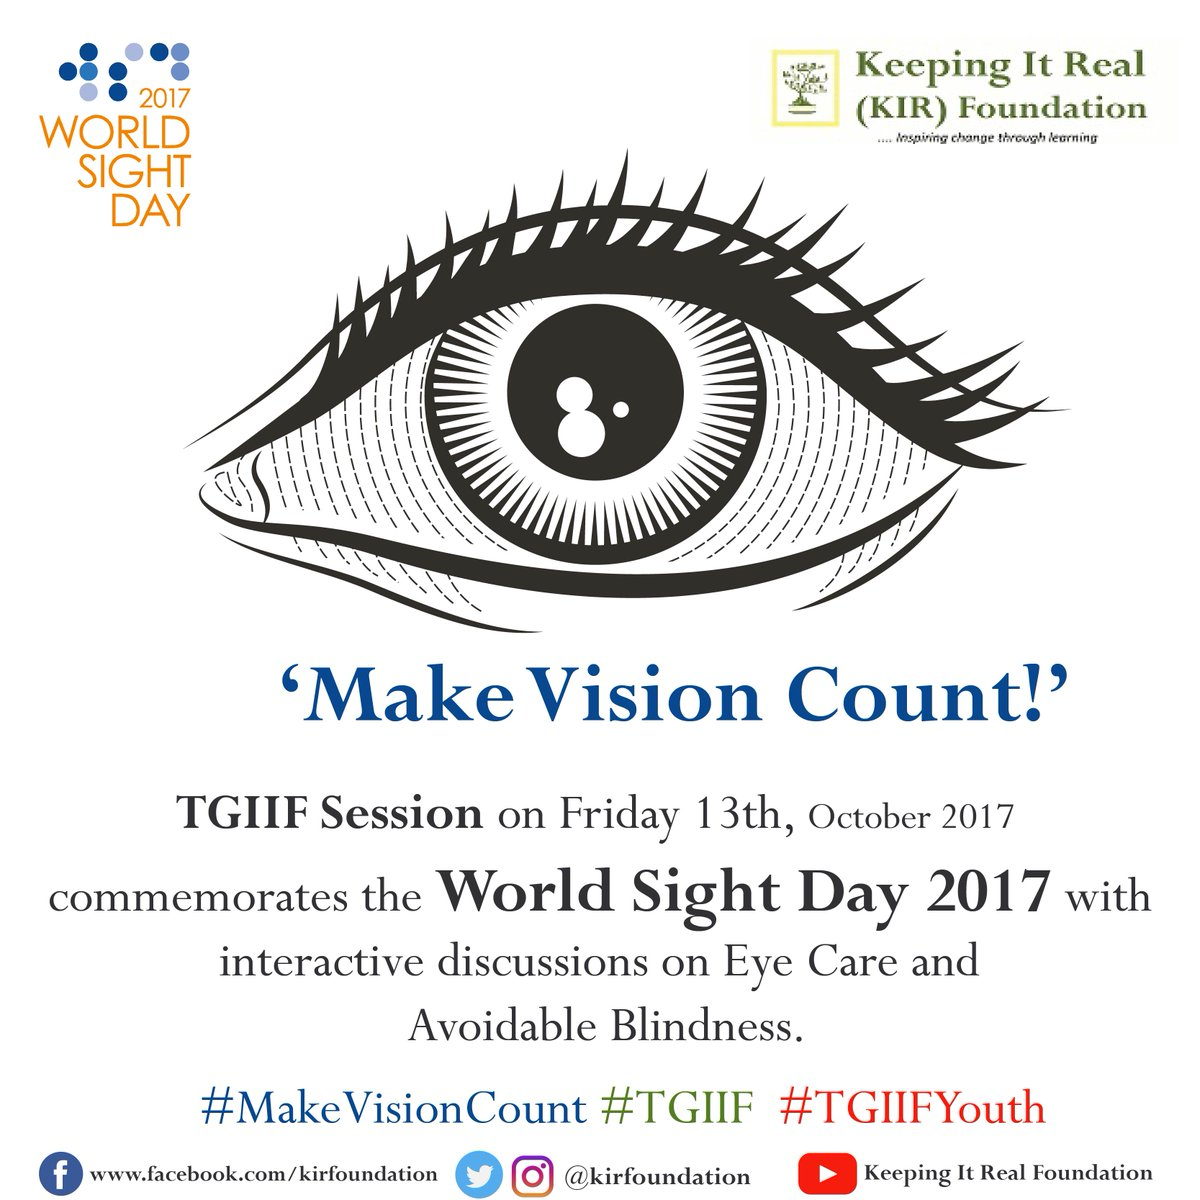 Today #TGIIFYouth Hub will commemorate #WorldSightDay2017. We aim to #MakeVisionCount. #TGIIF <br>http://pic.twitter.com/f3xpp7YlmP